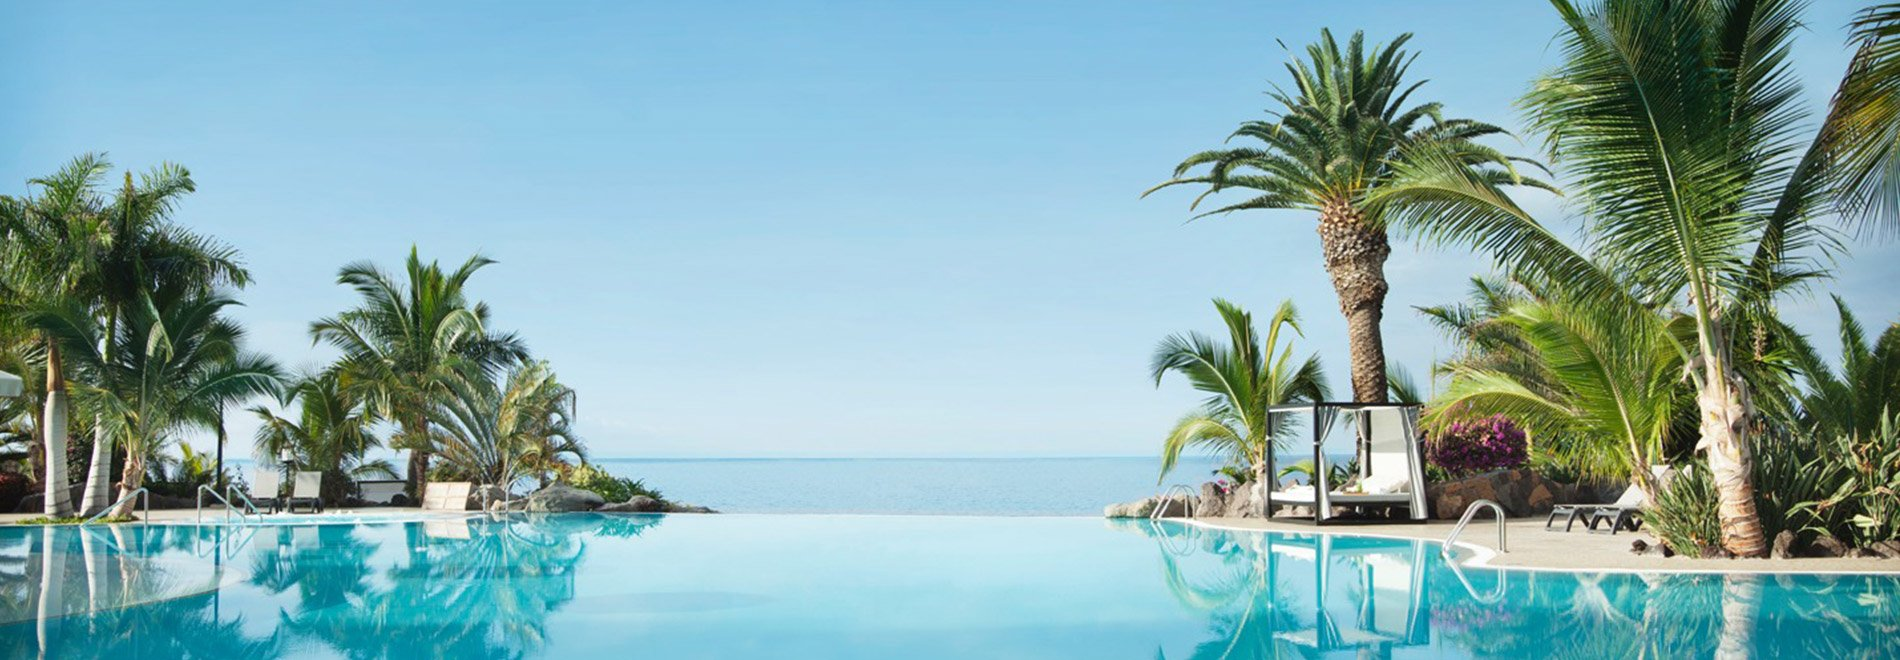 Luxury Hotels In Playa De Las Americas